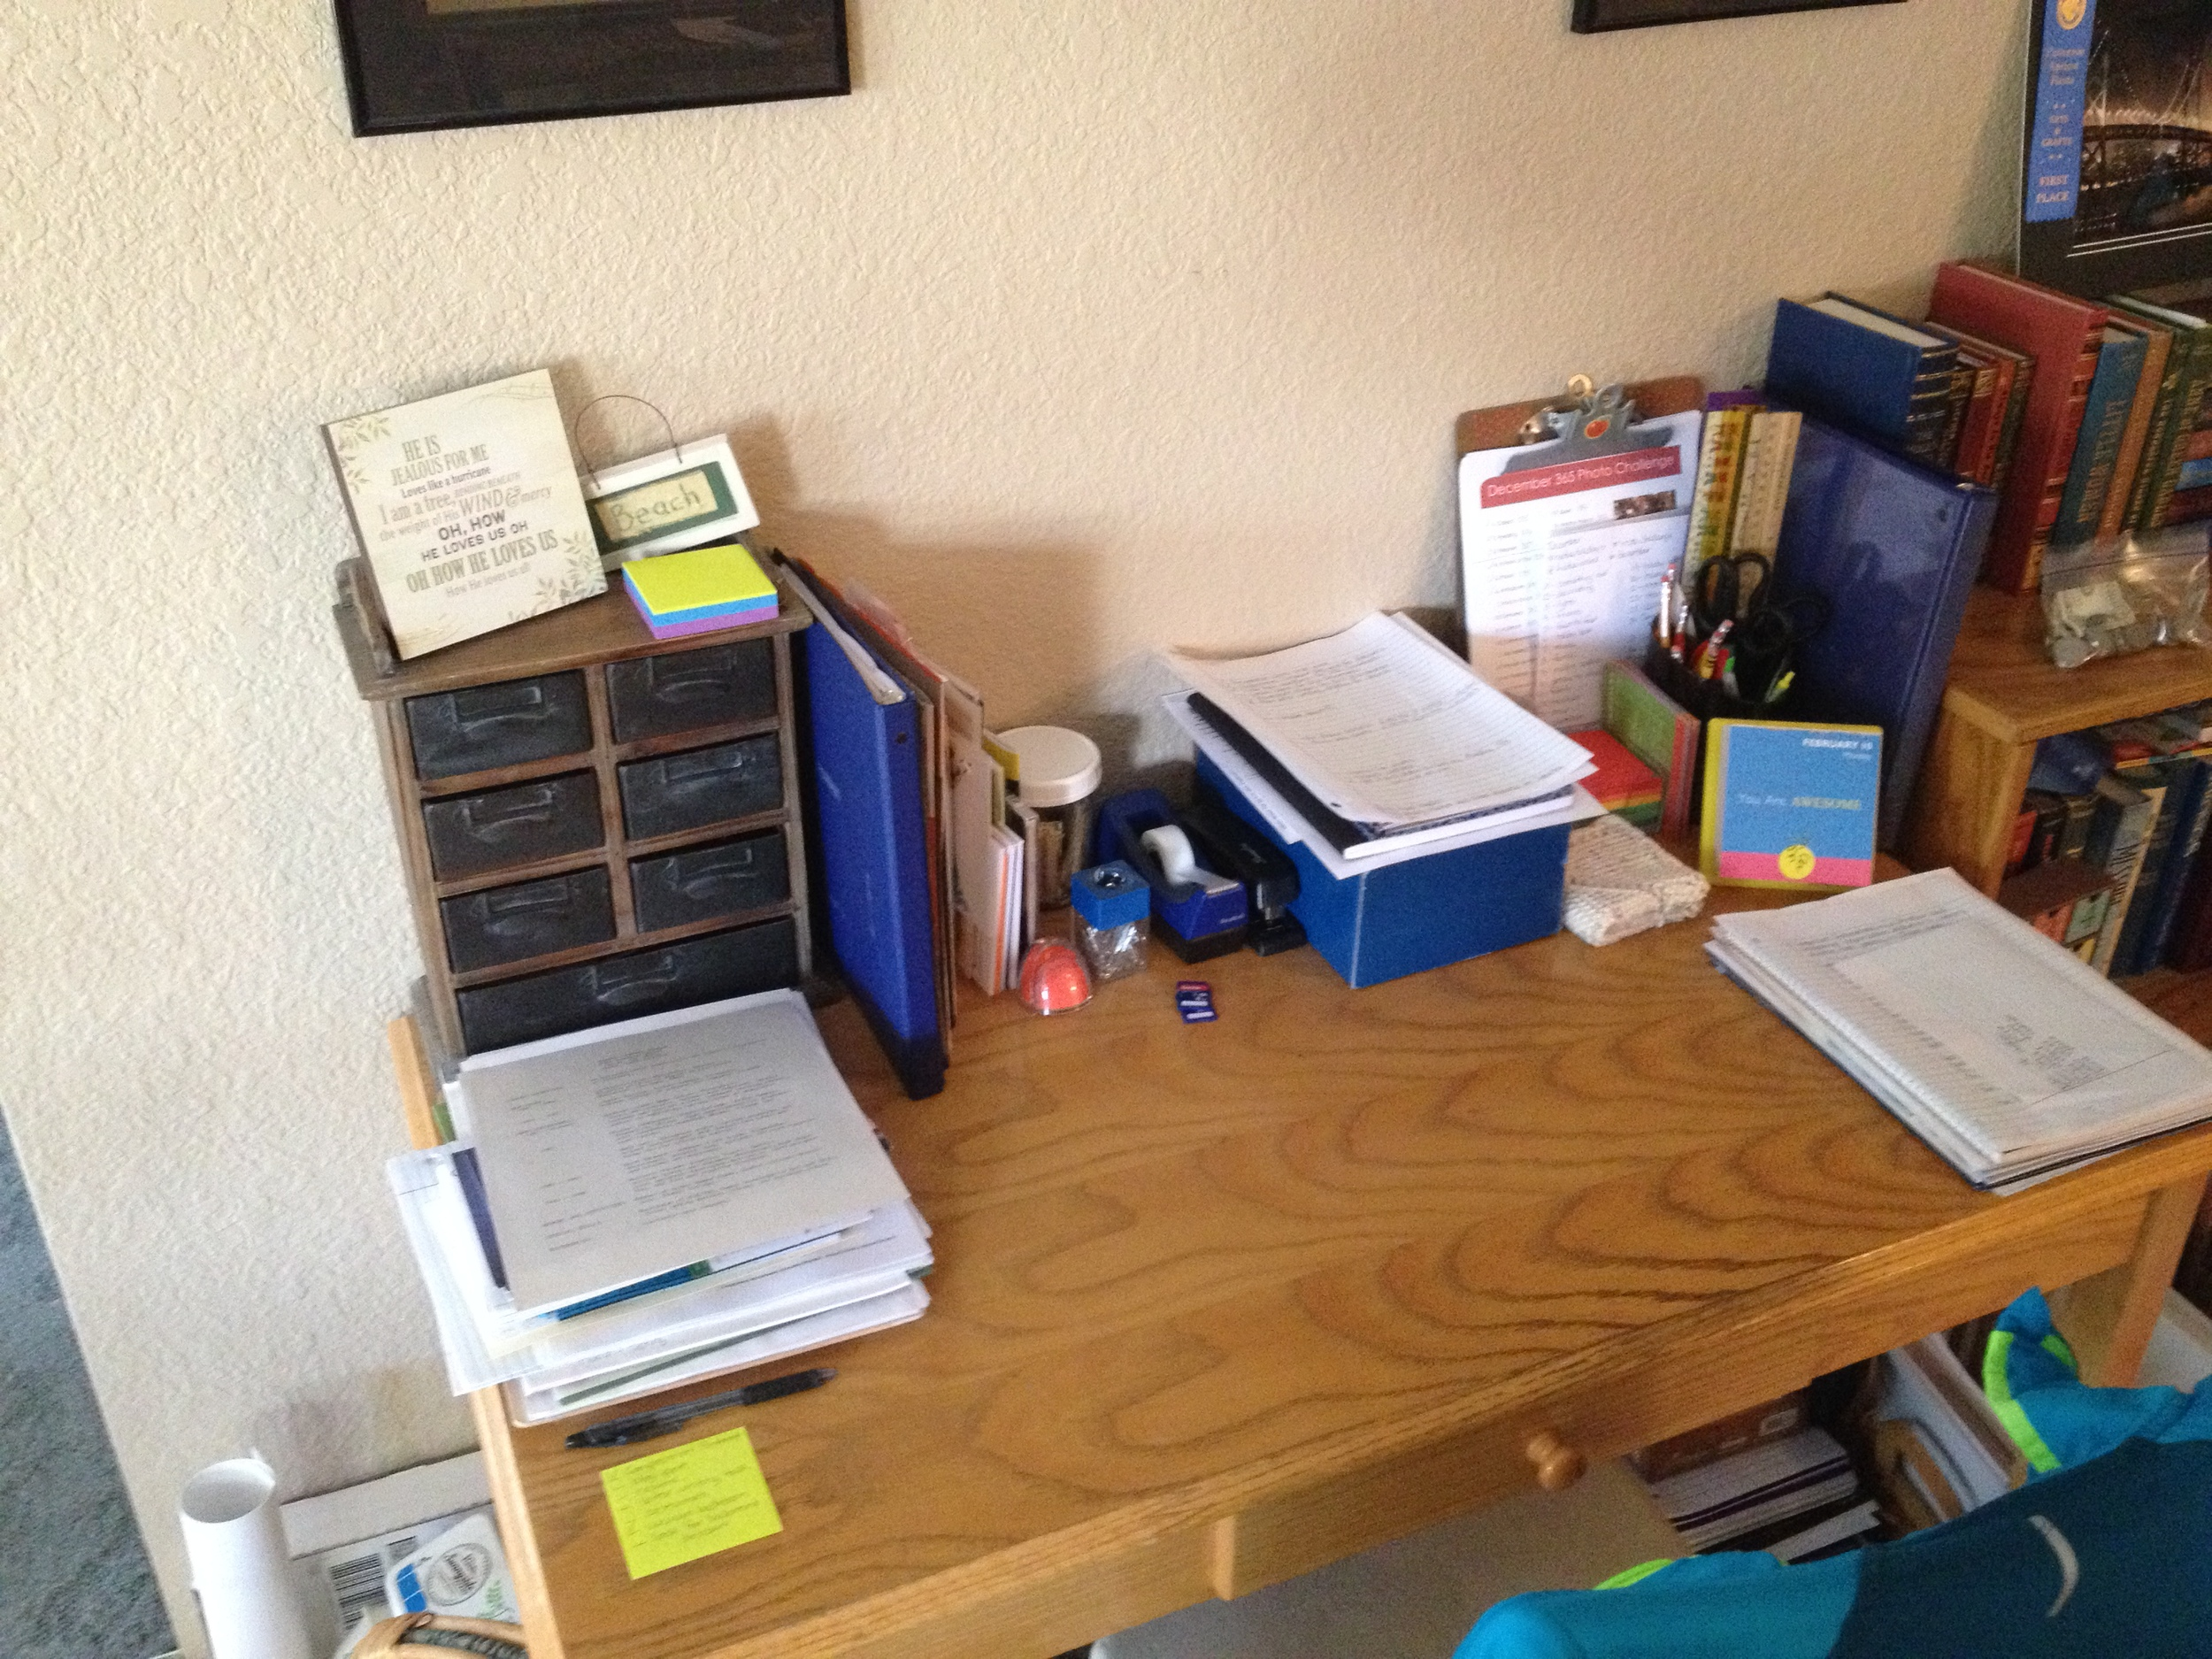 My desk with less clutter!